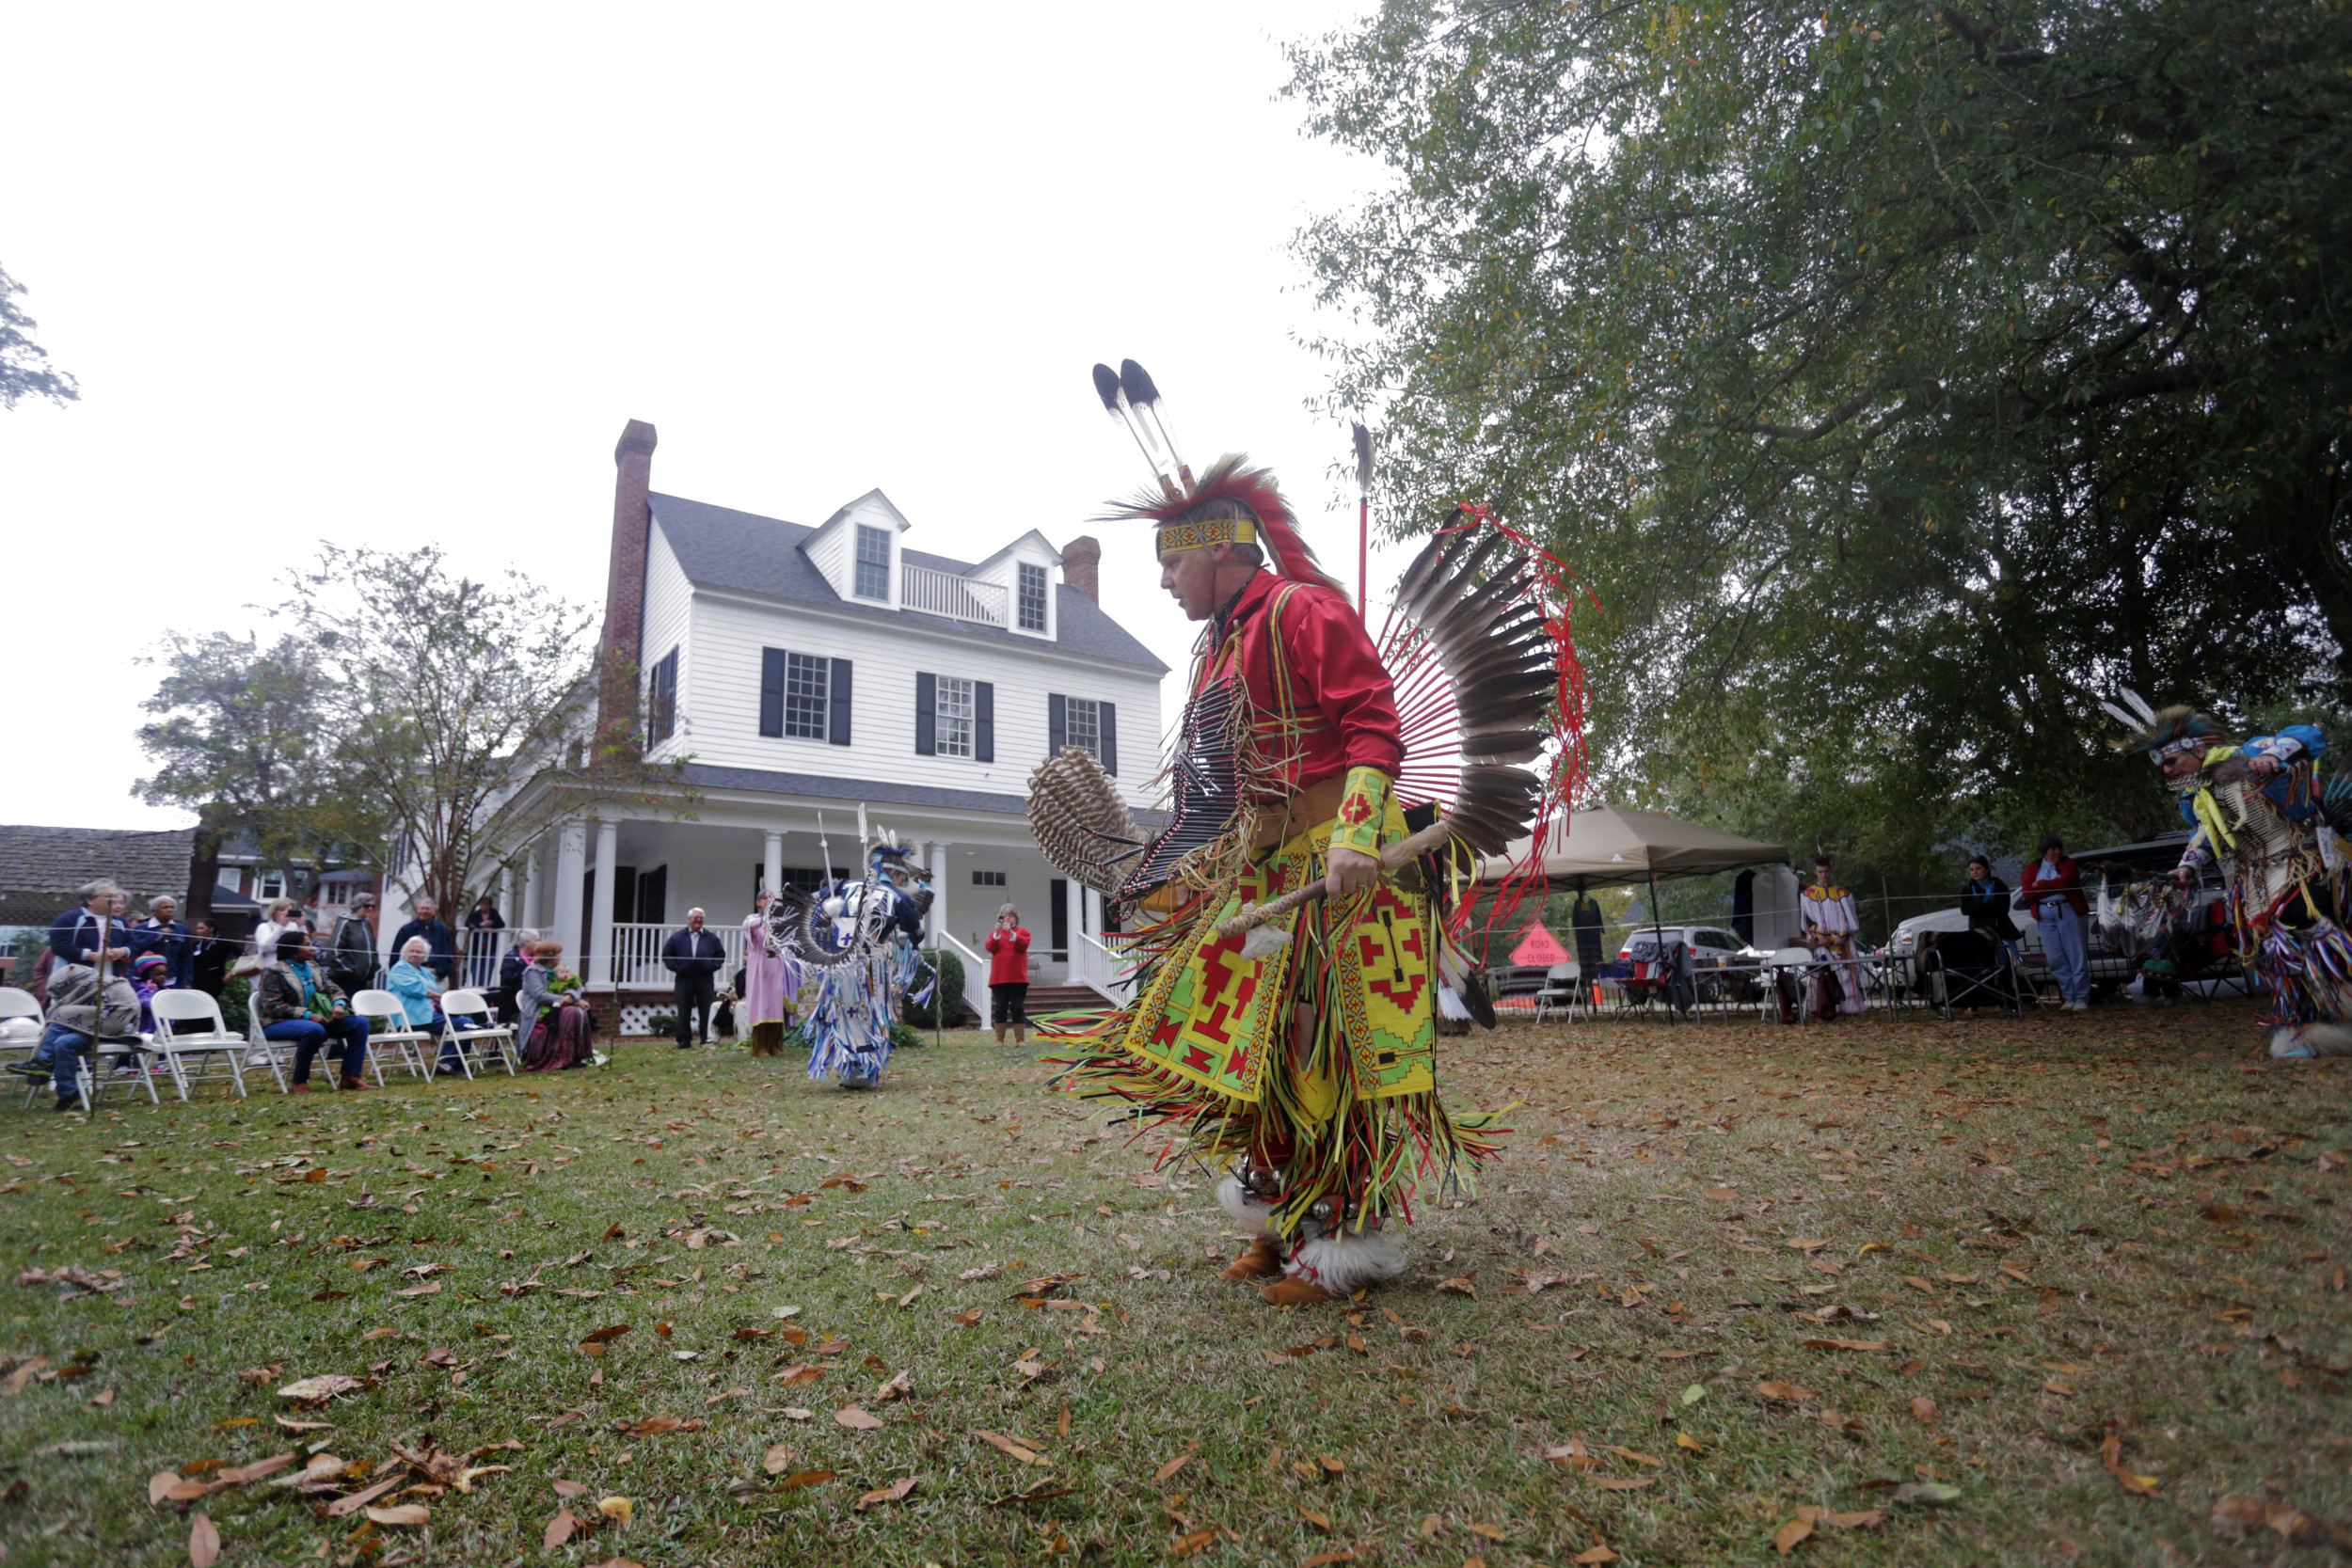 Native Americans dance during a Sumter Tribe of Cheraw Indians event in 2014 at the Sumter County Museum.